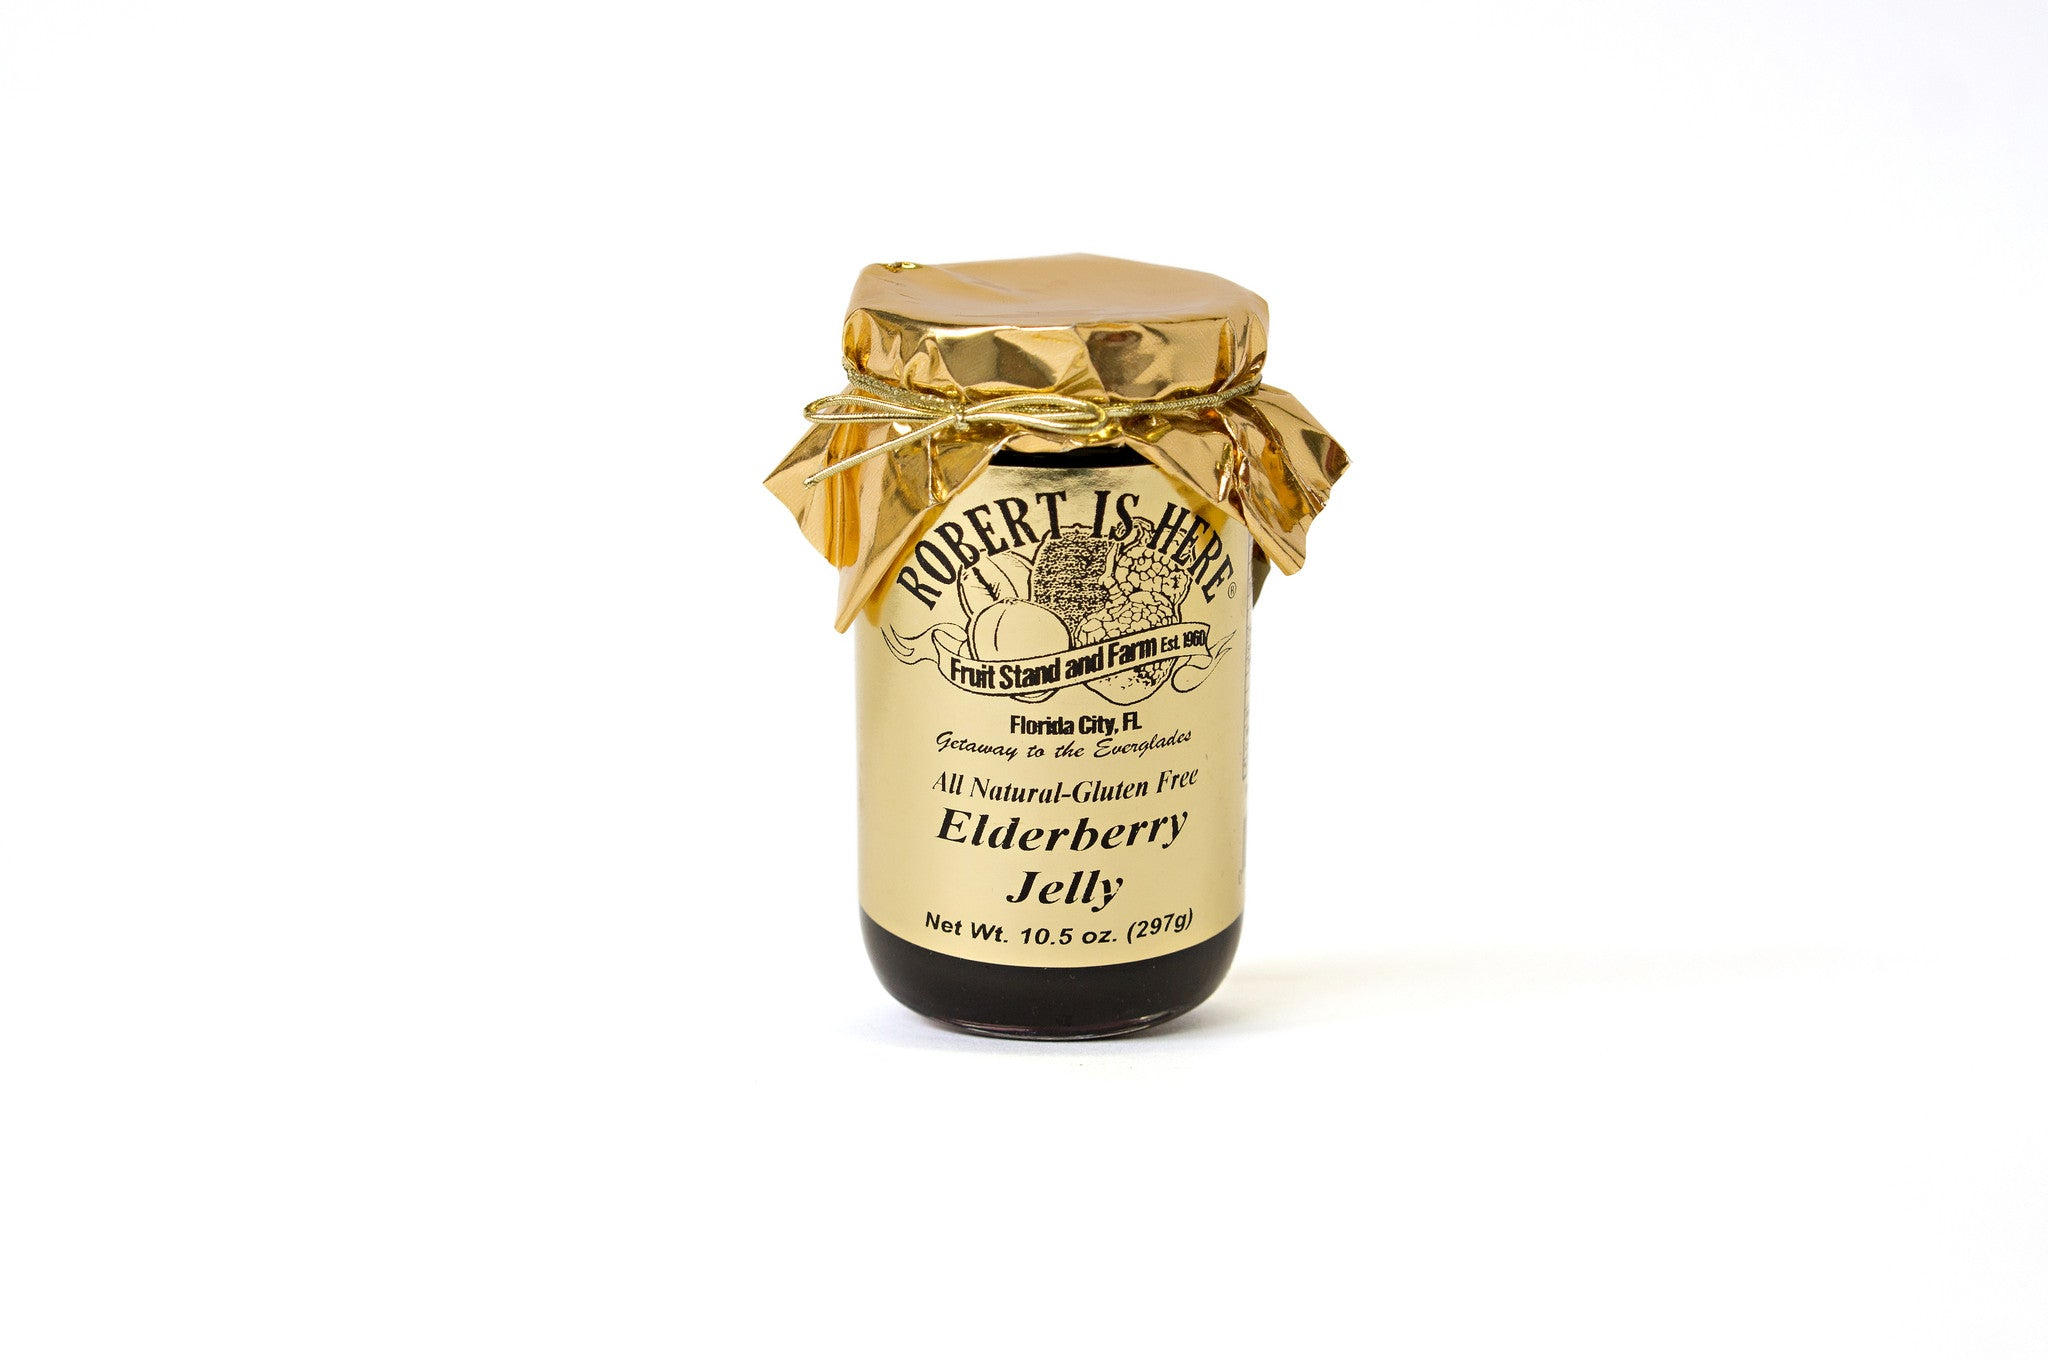 Elderberry Jelly